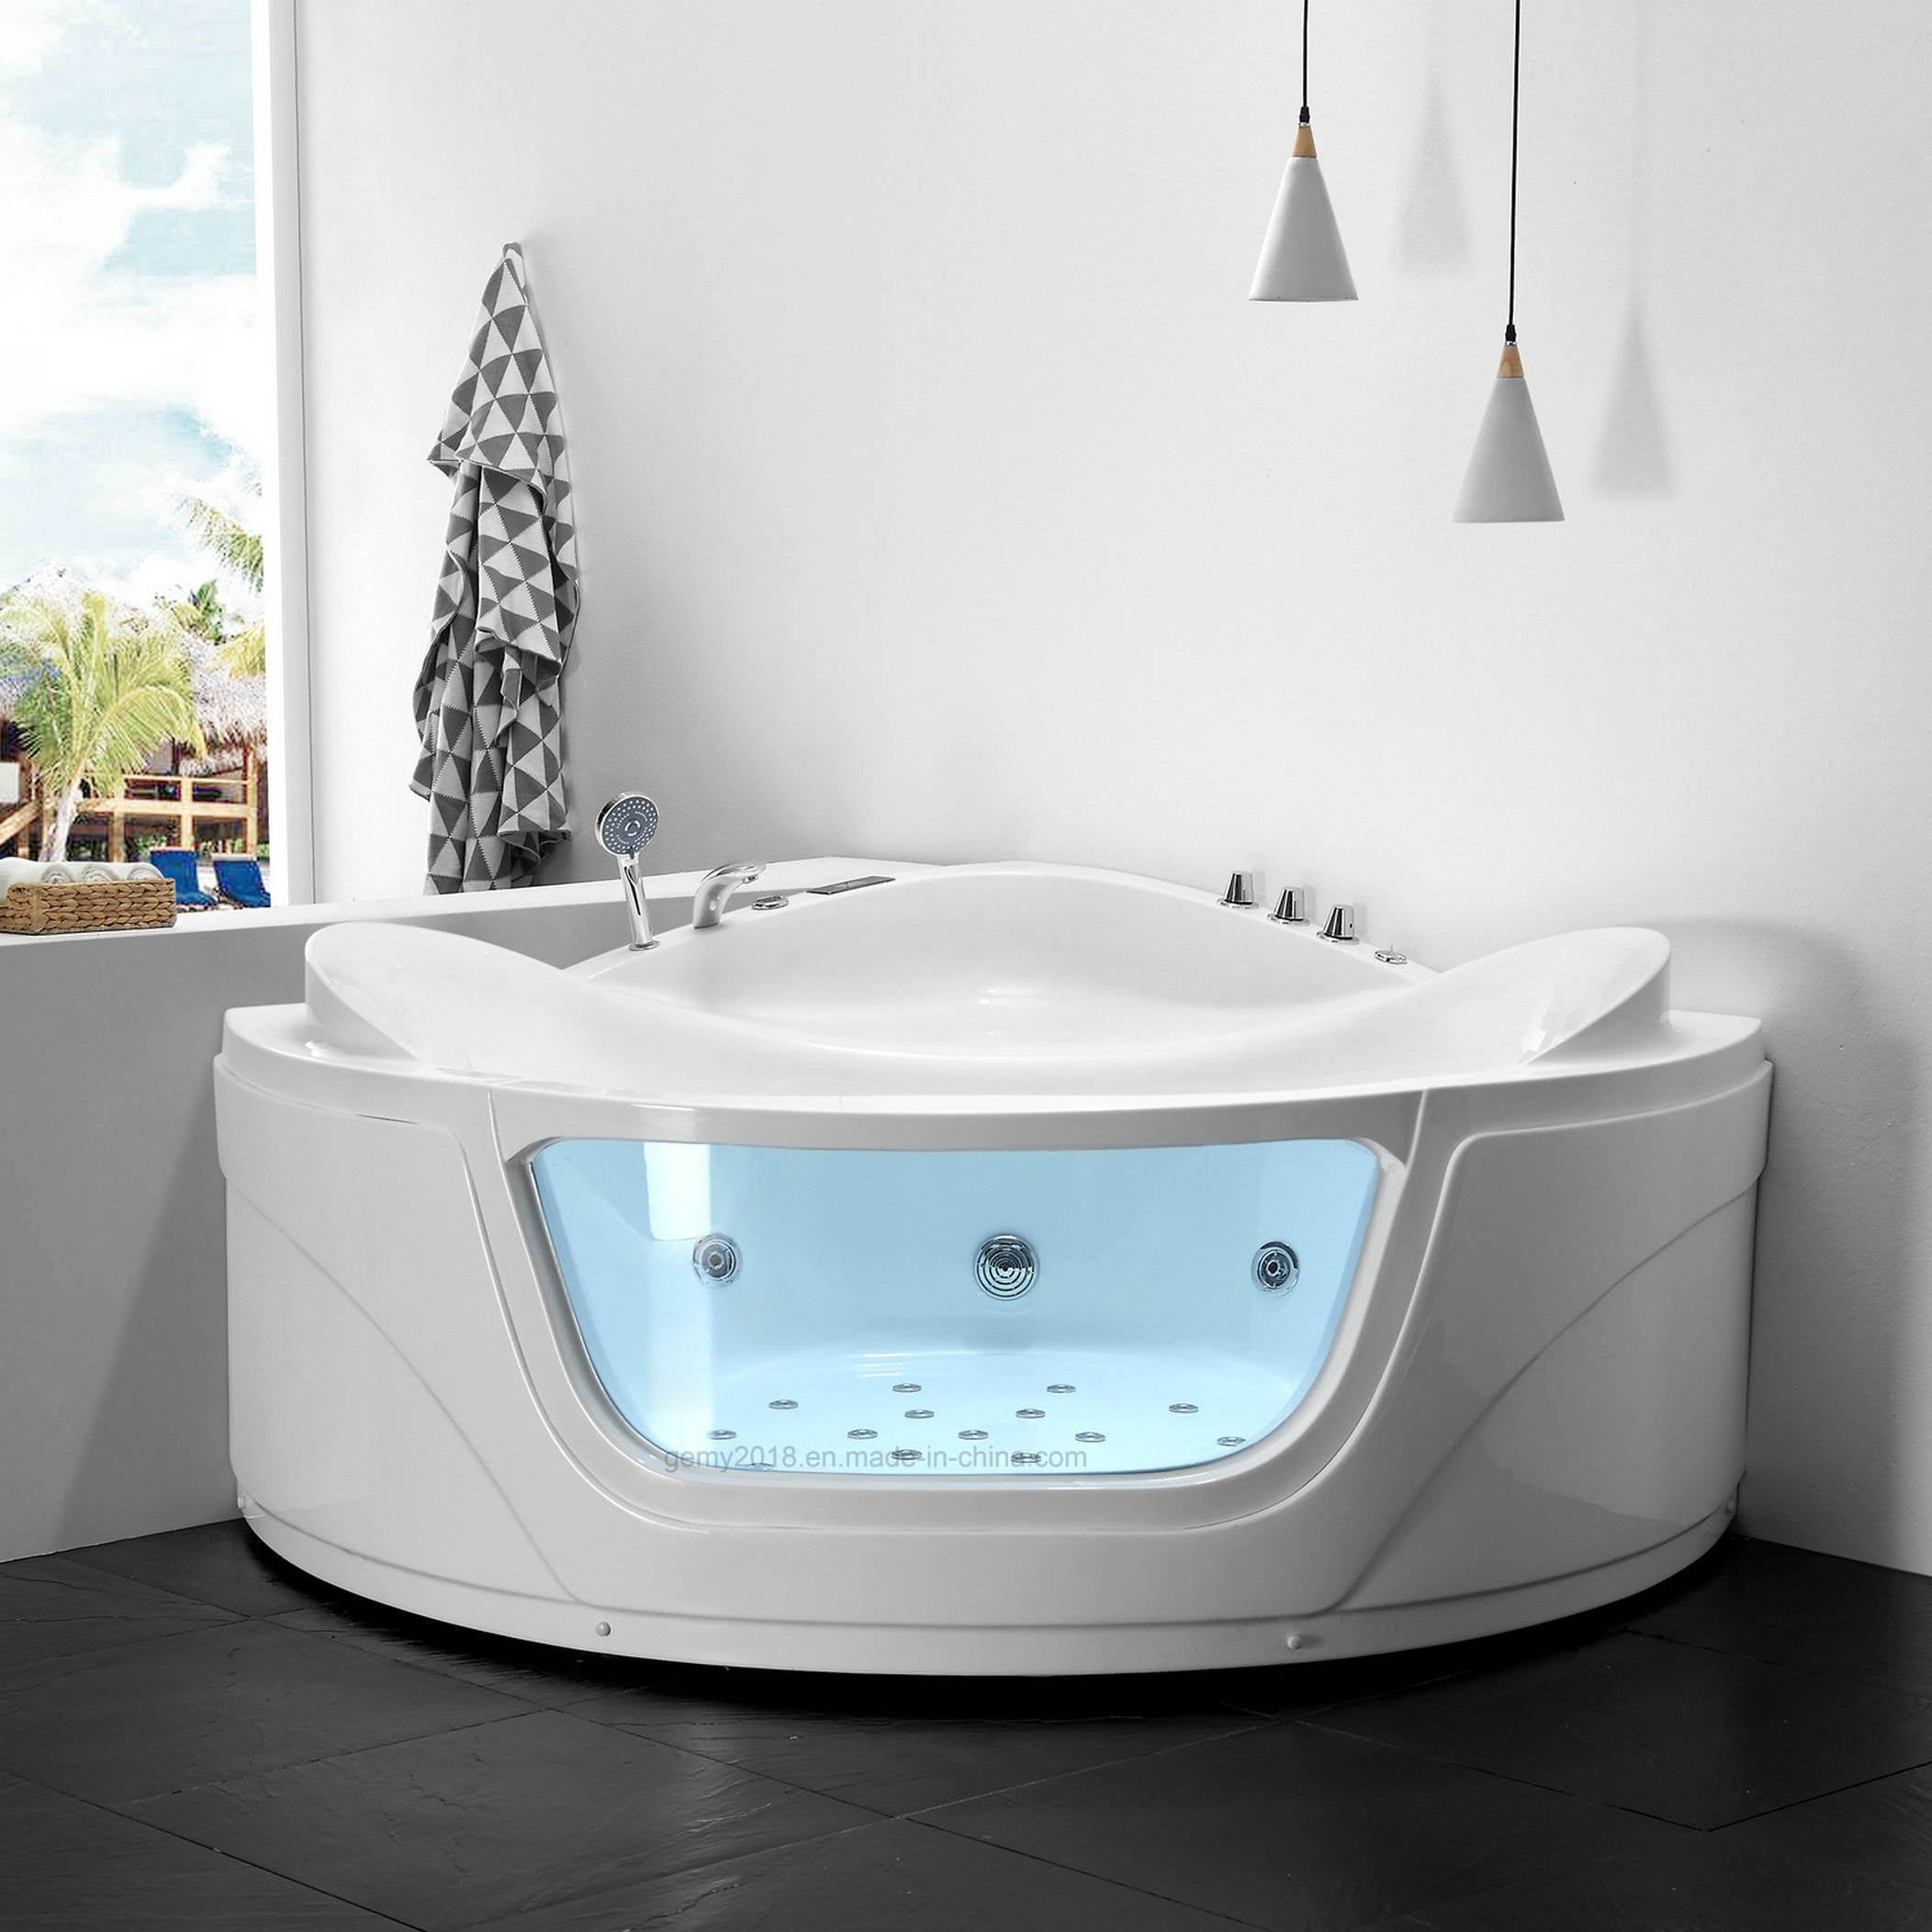 ffooty manufacturers bathtub